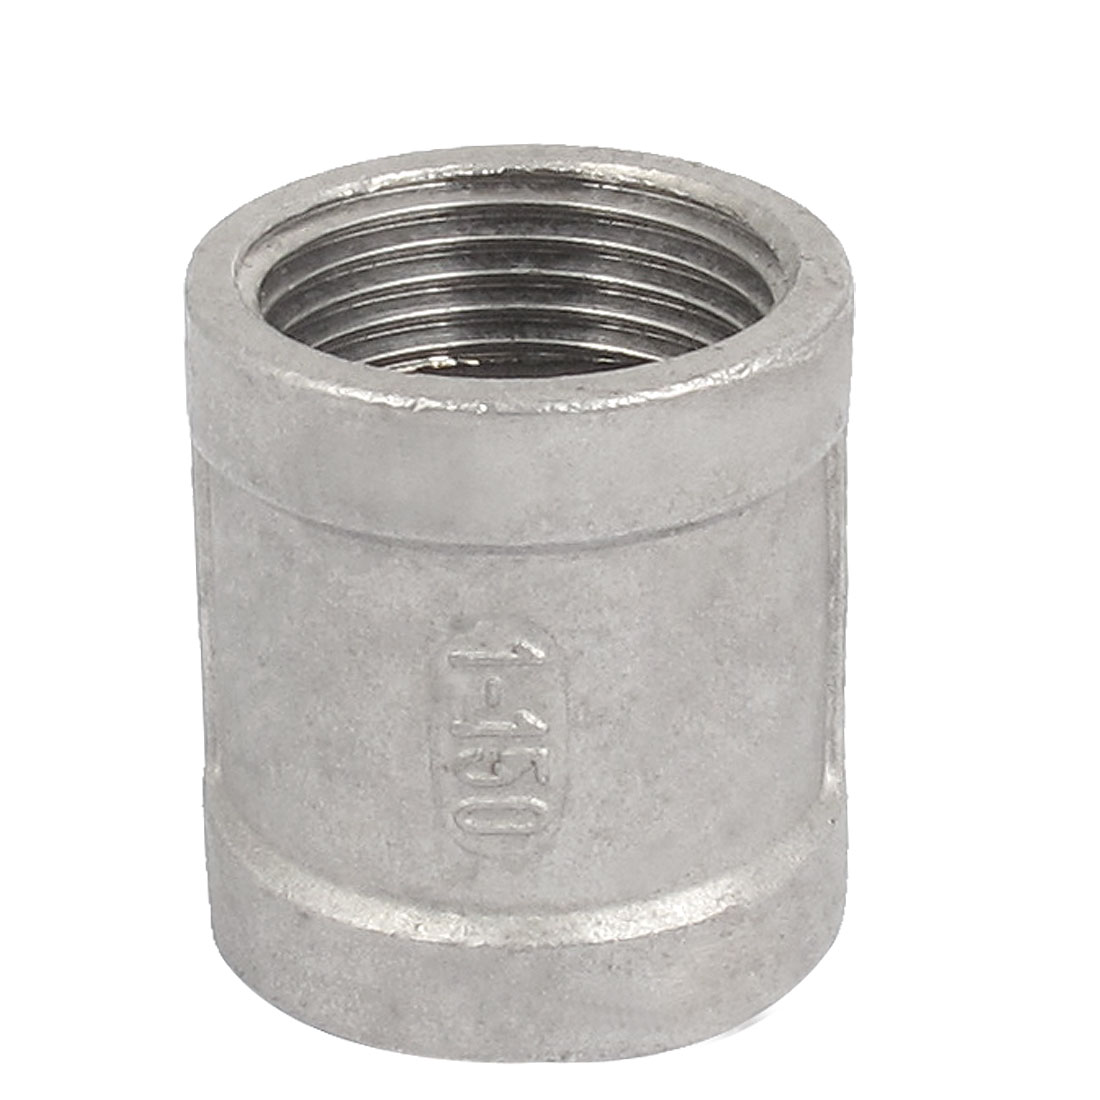 Female Thread Straight Rod Coupling Connector Pipe Fittings 1 BSP Gray